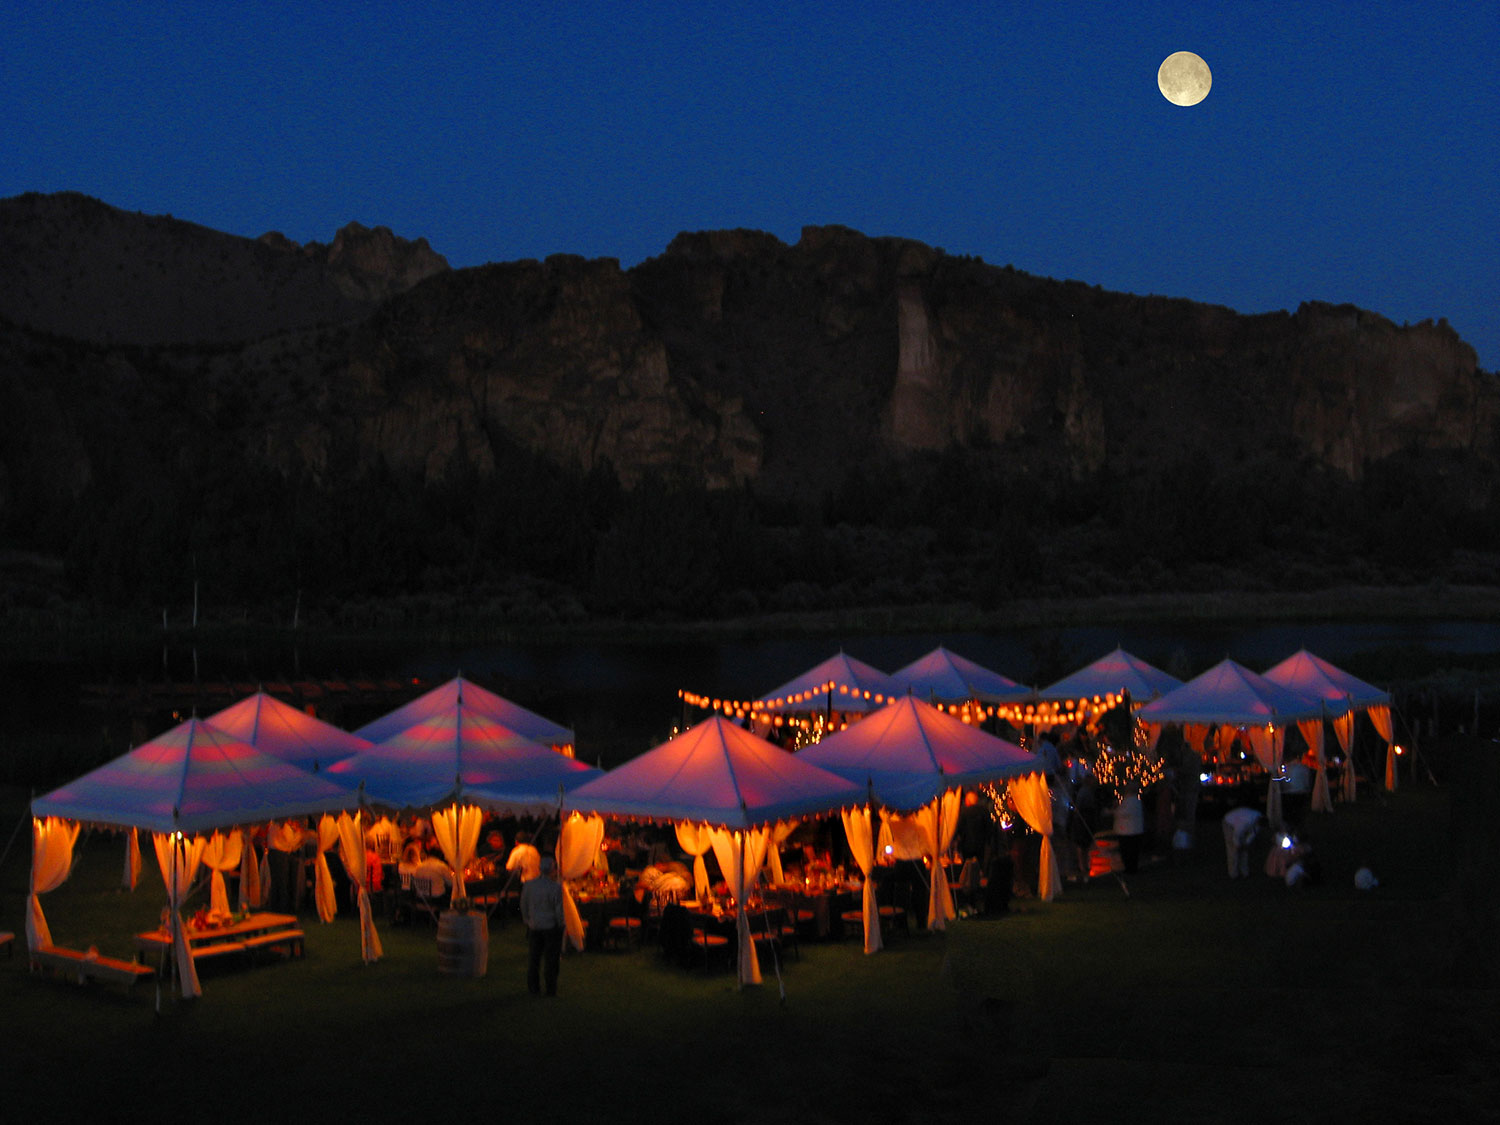 raj-tents-destination-events-lighted-pergolas-night.jpg